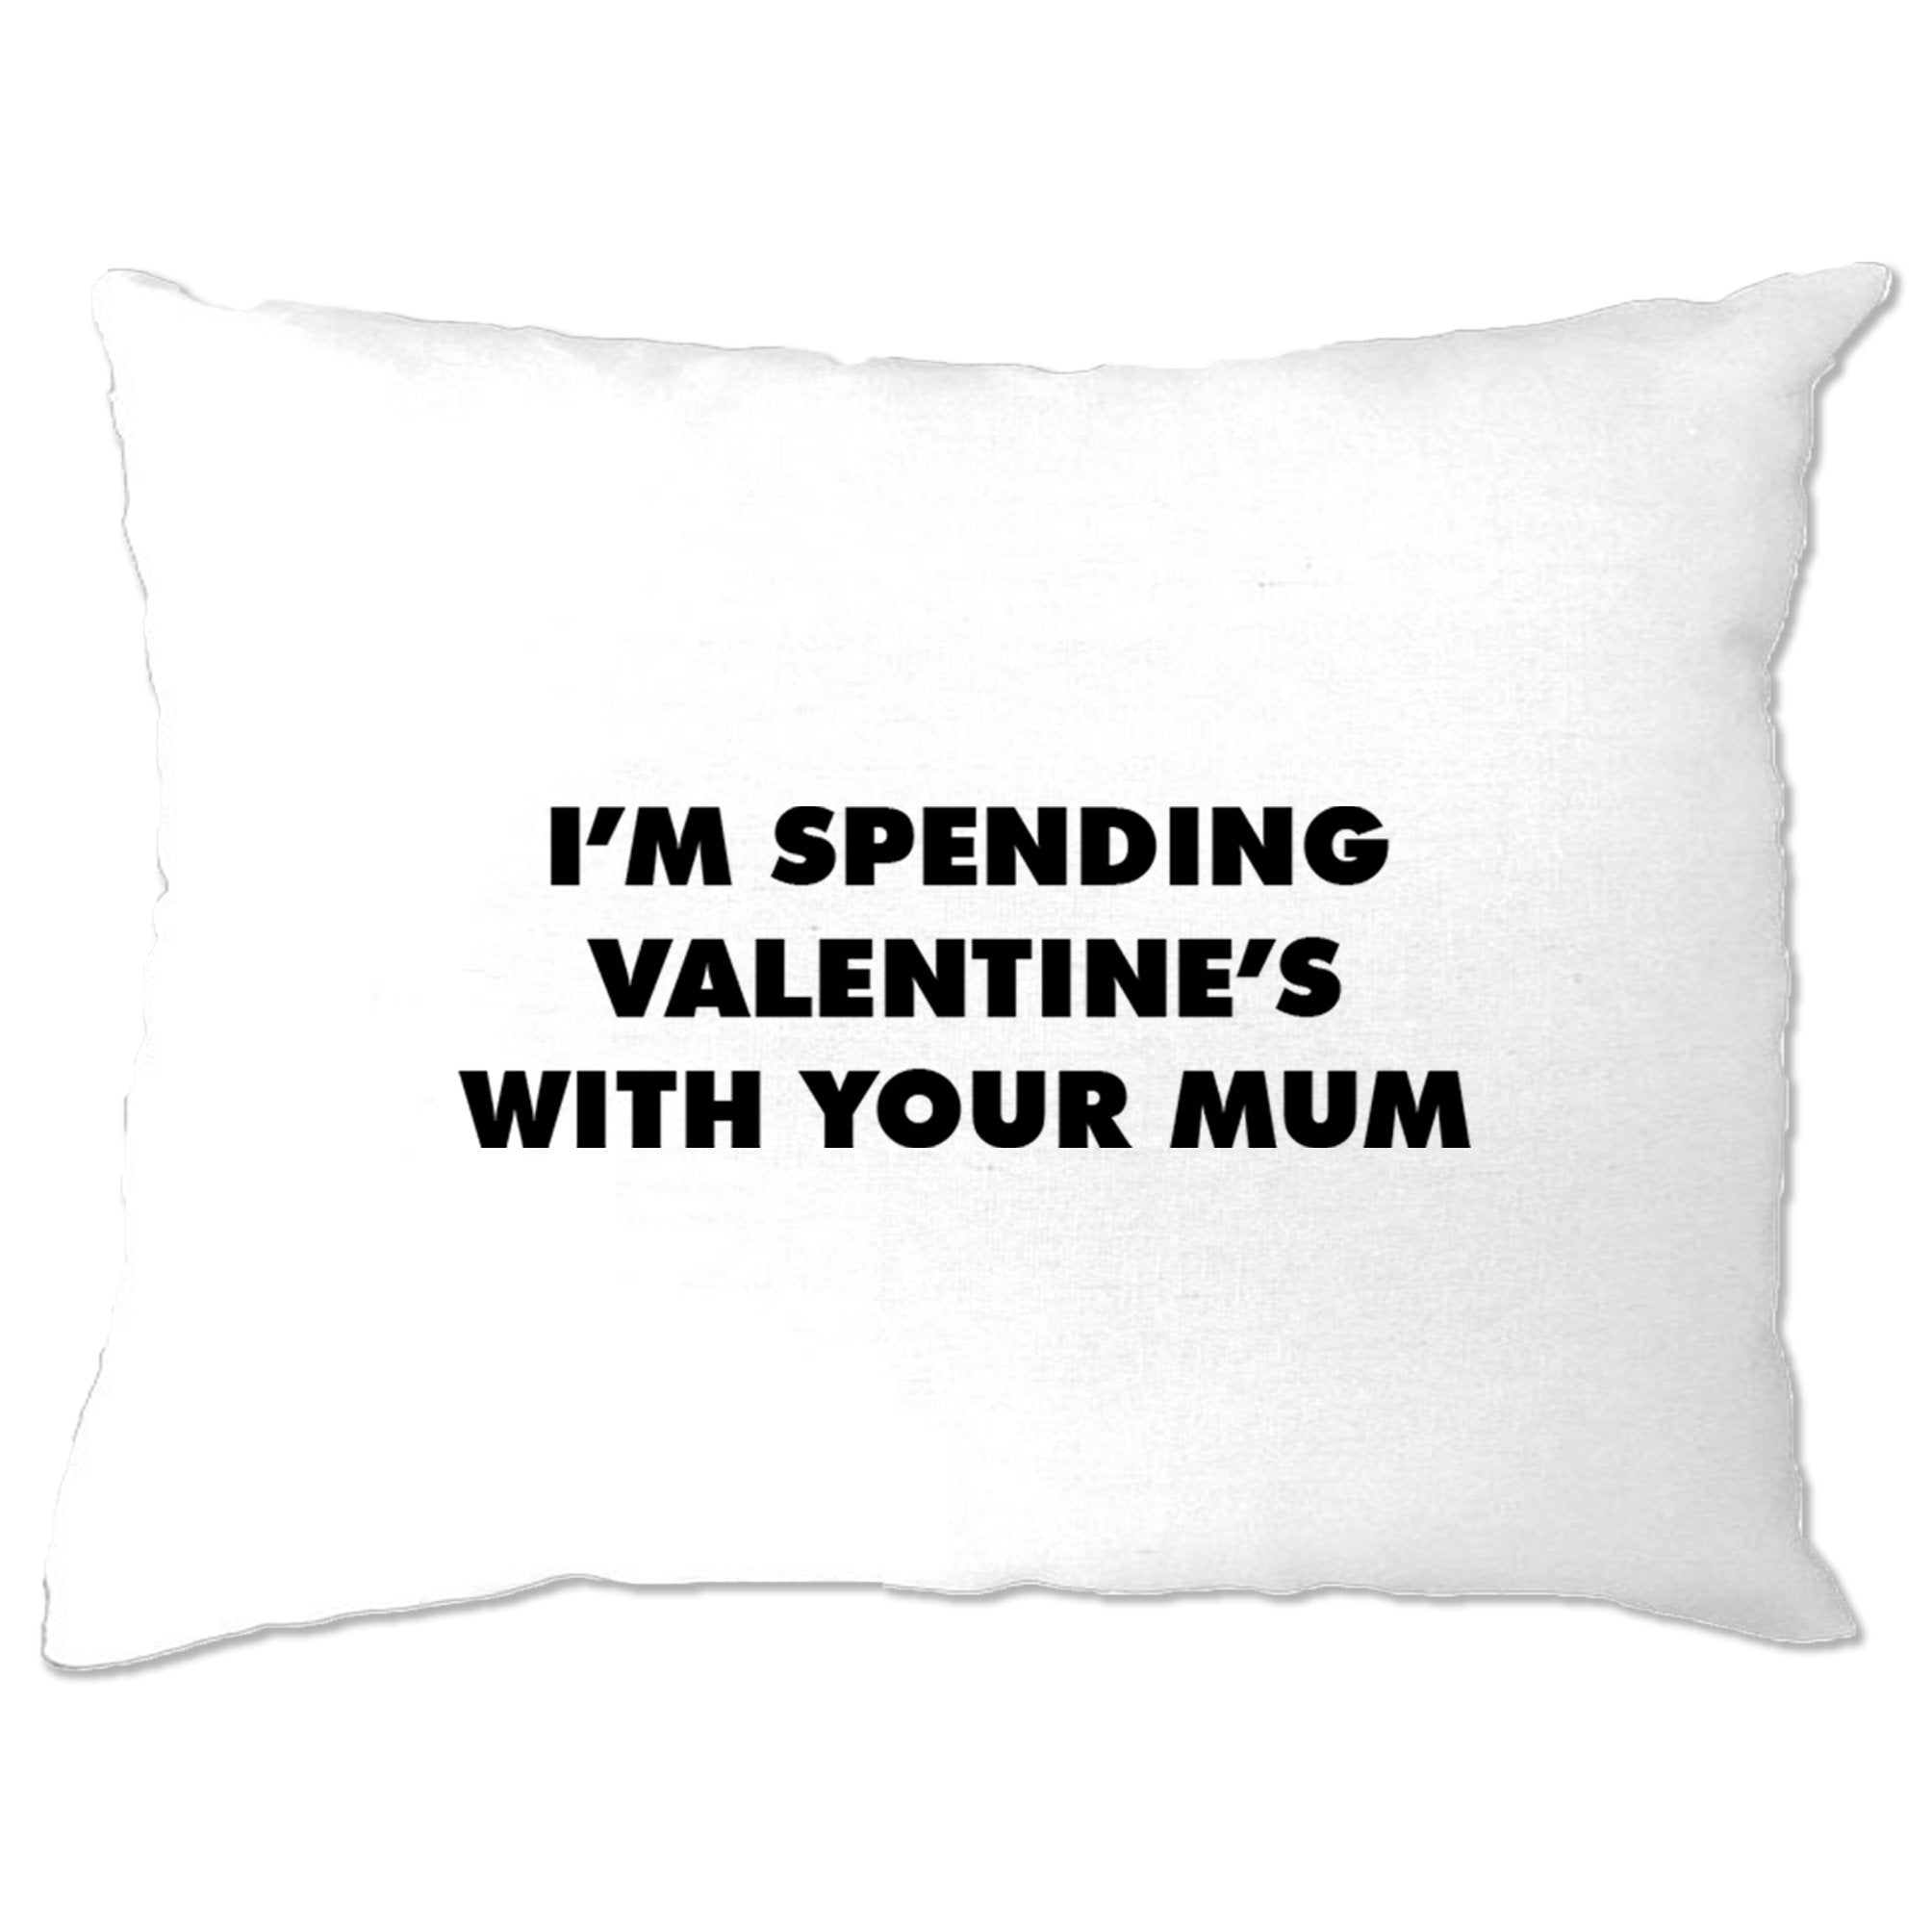 Novelty Pillow Case Spending Valentine's With Your Mum